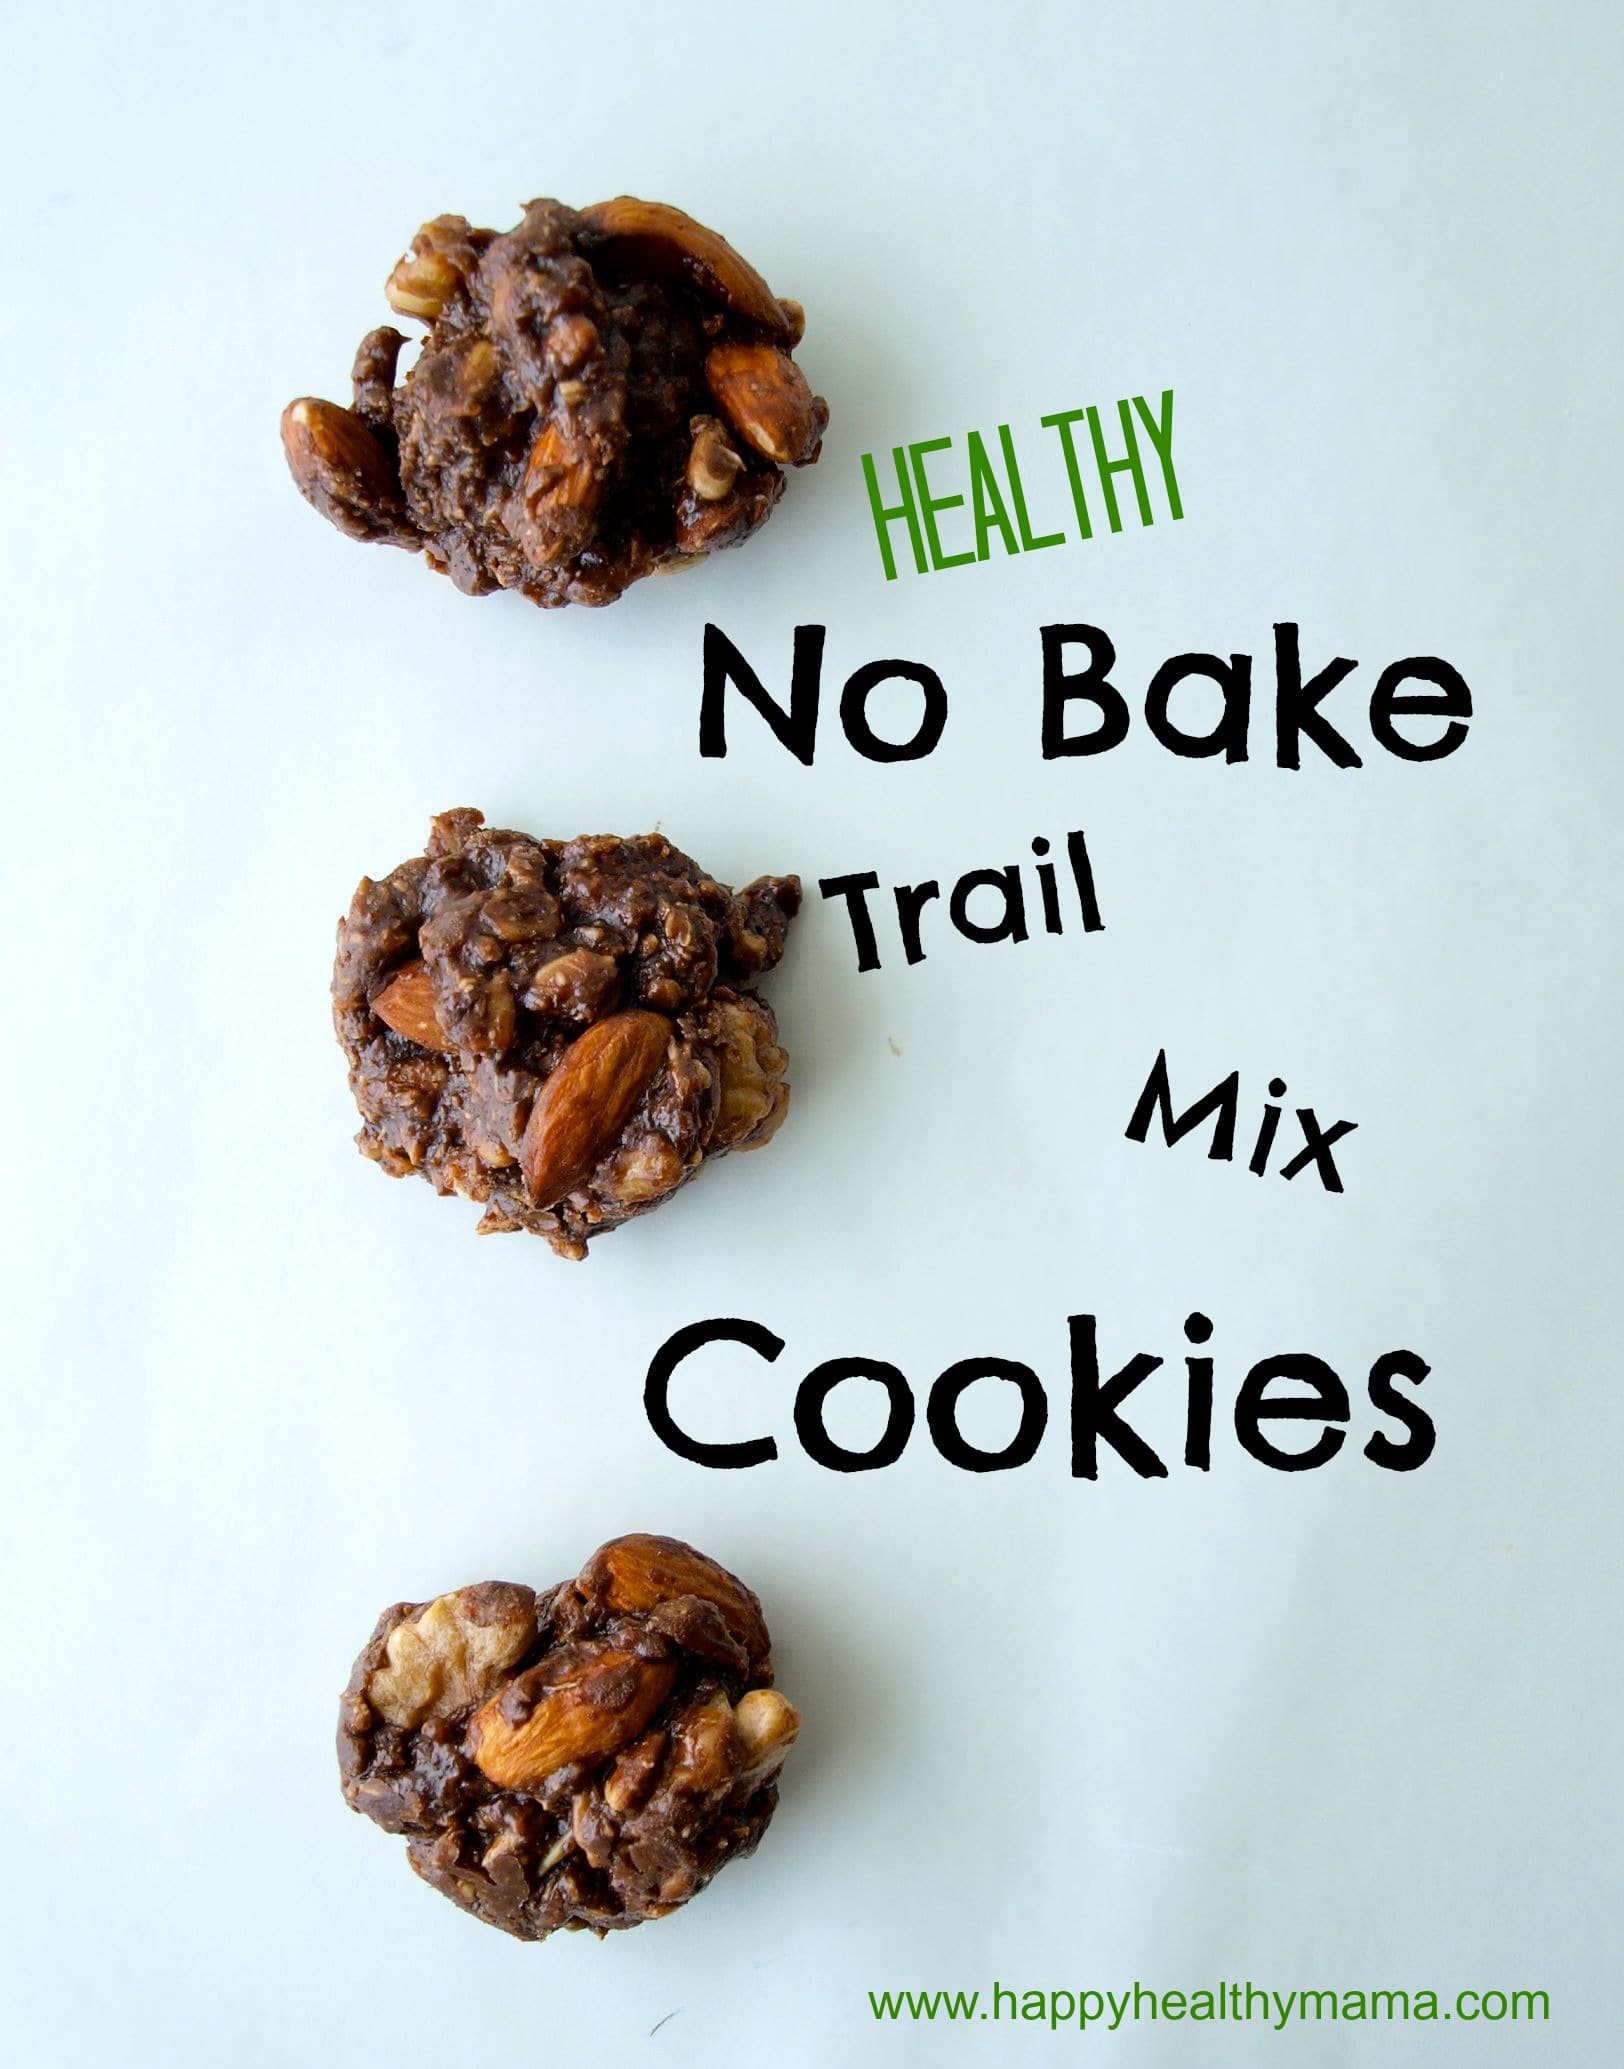 Chocolate no bake trail mix cookies {grain-free, dairy-free}